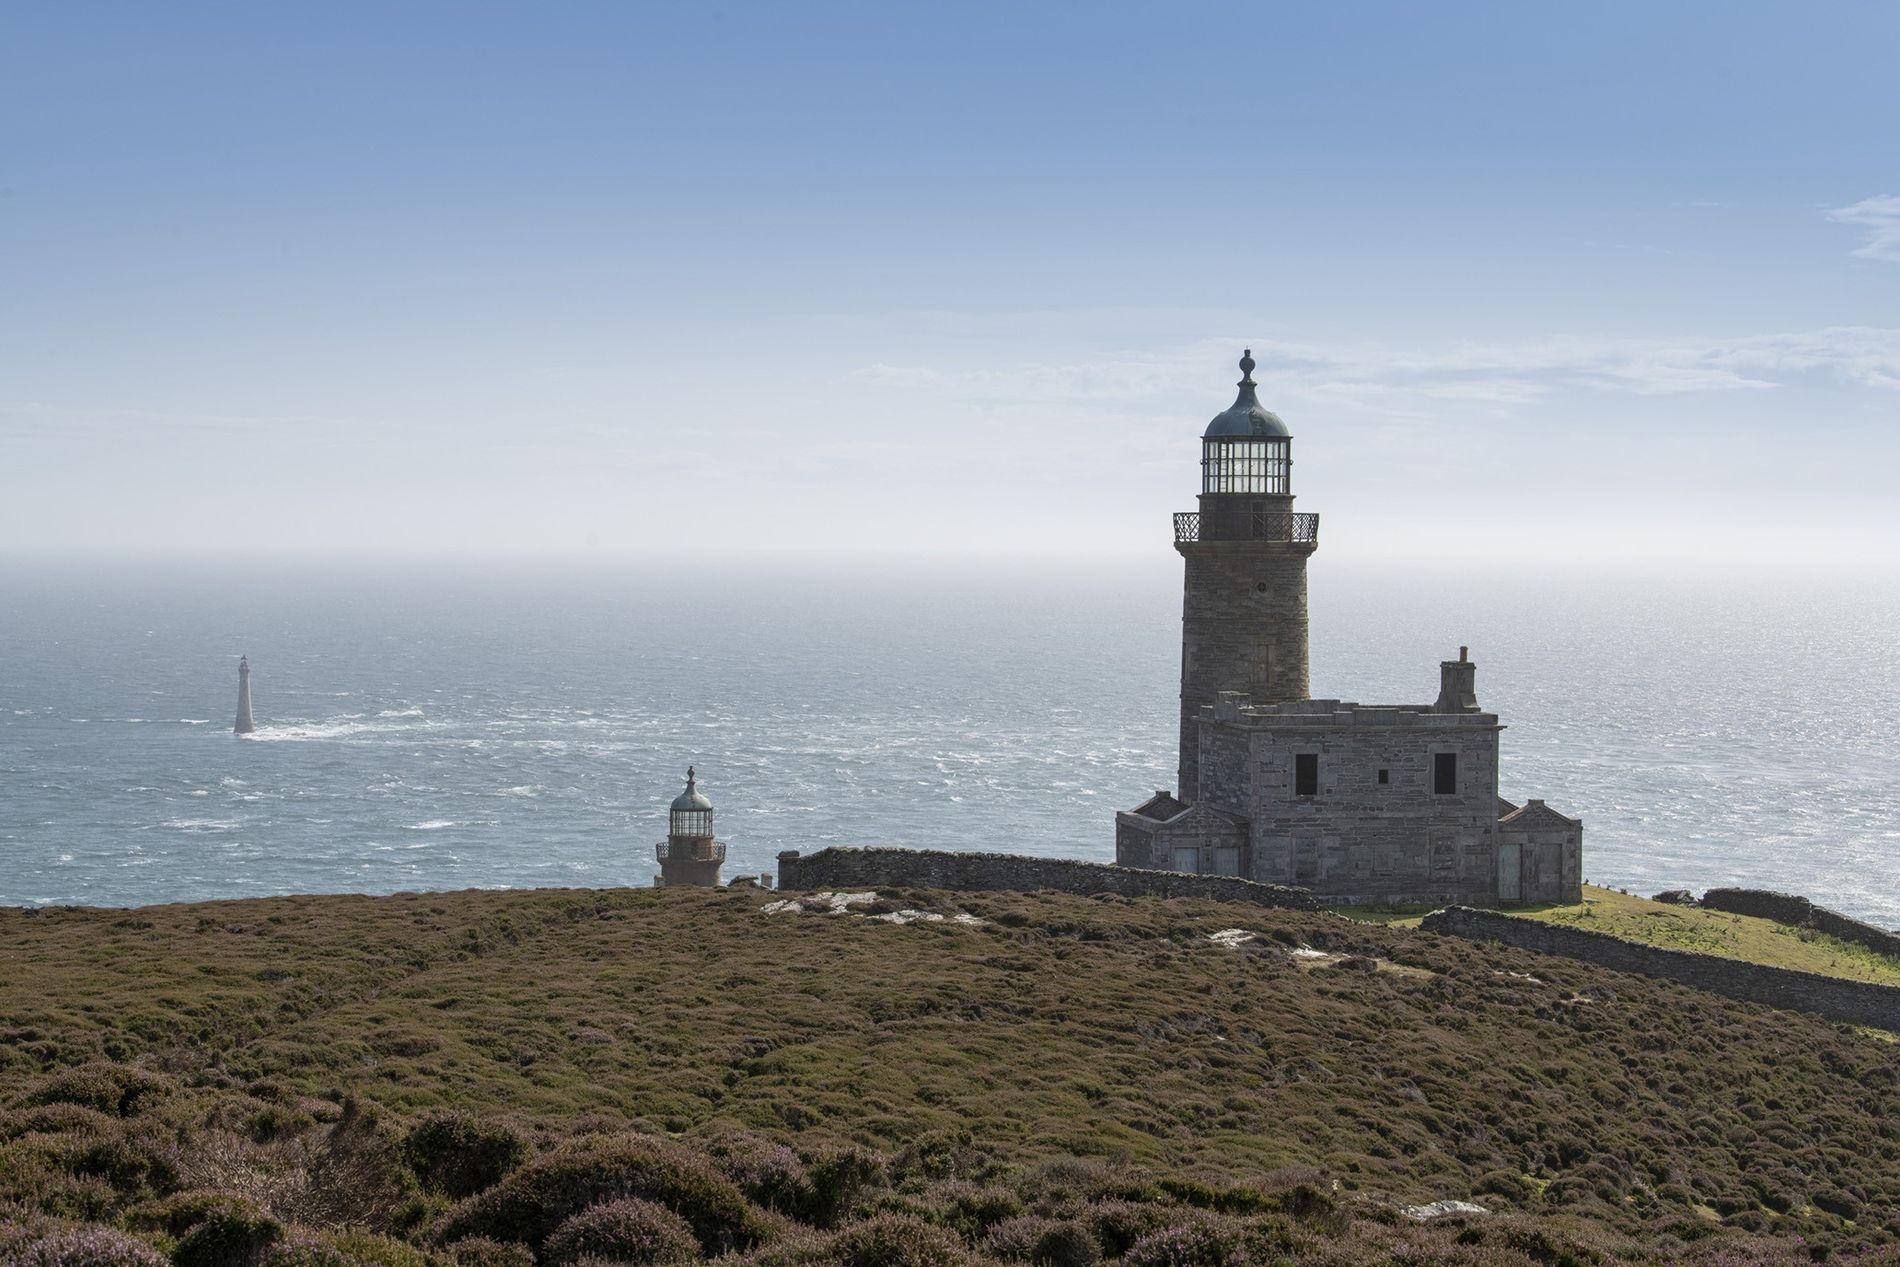 Lighthouses on the Calf of Man, a small island off the coast of the main island. ...